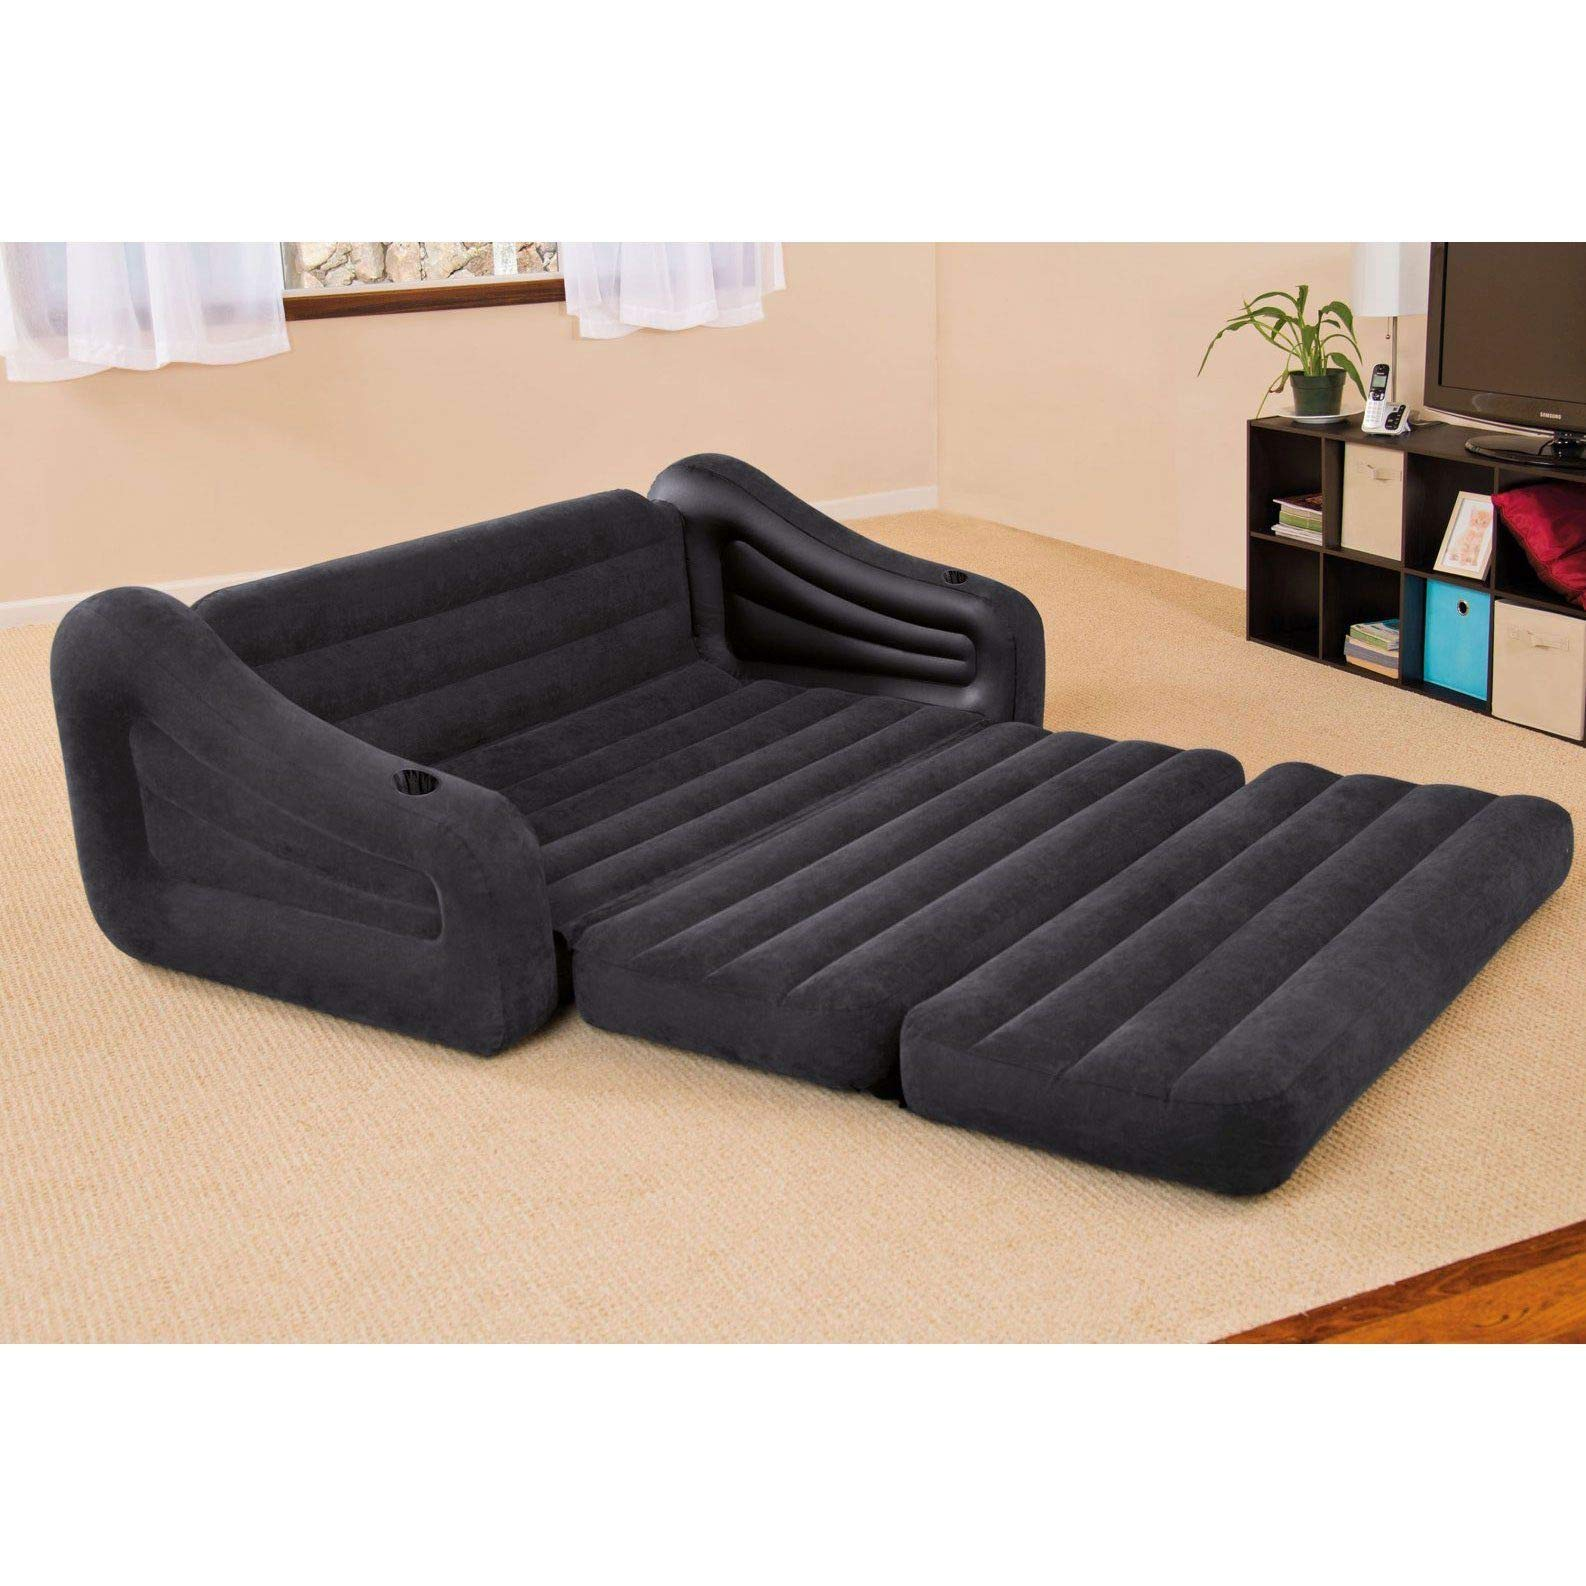 Intex 68566EP Inflatable Queen Size Pull Out Futon Sofa Couch Bed, Dark Gray by Unknown